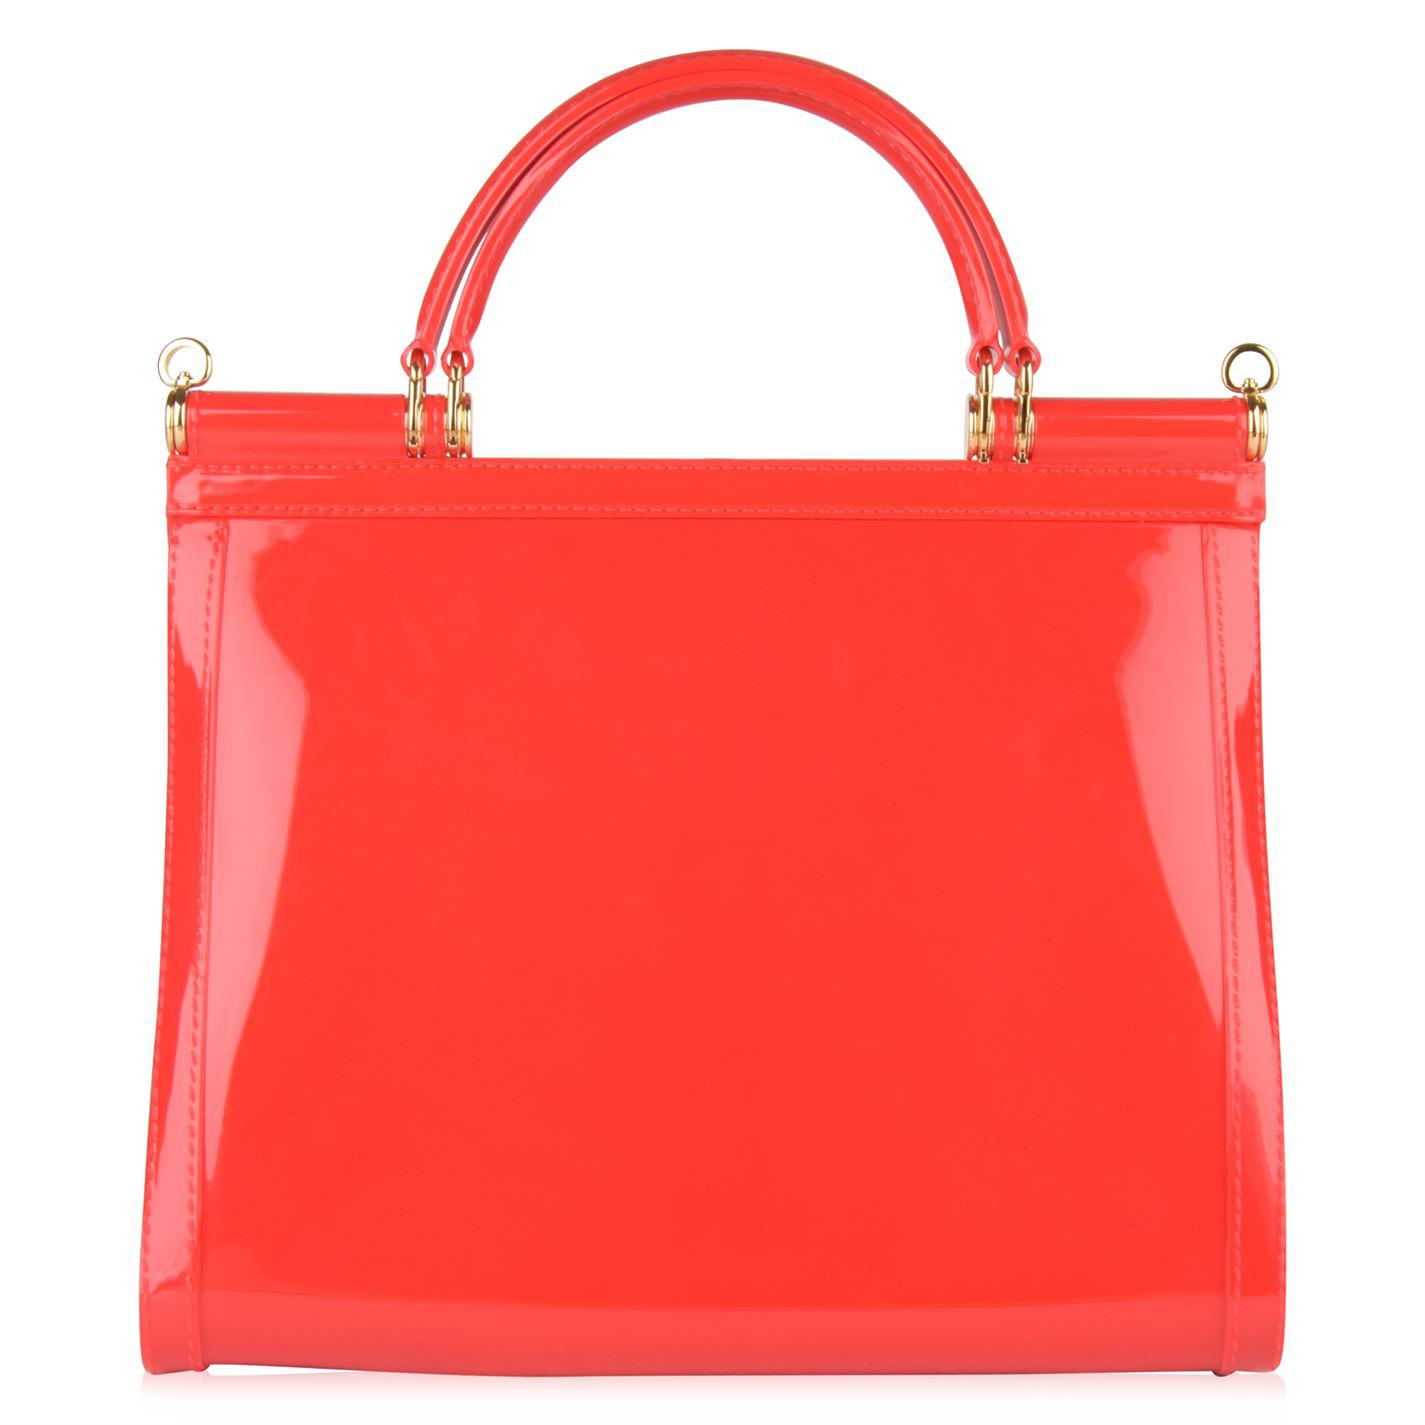 679760ad86 Dolce   Gabbana - Red Sicily Semi Transparent Rubber Bag - Lyst. View  fullscreen